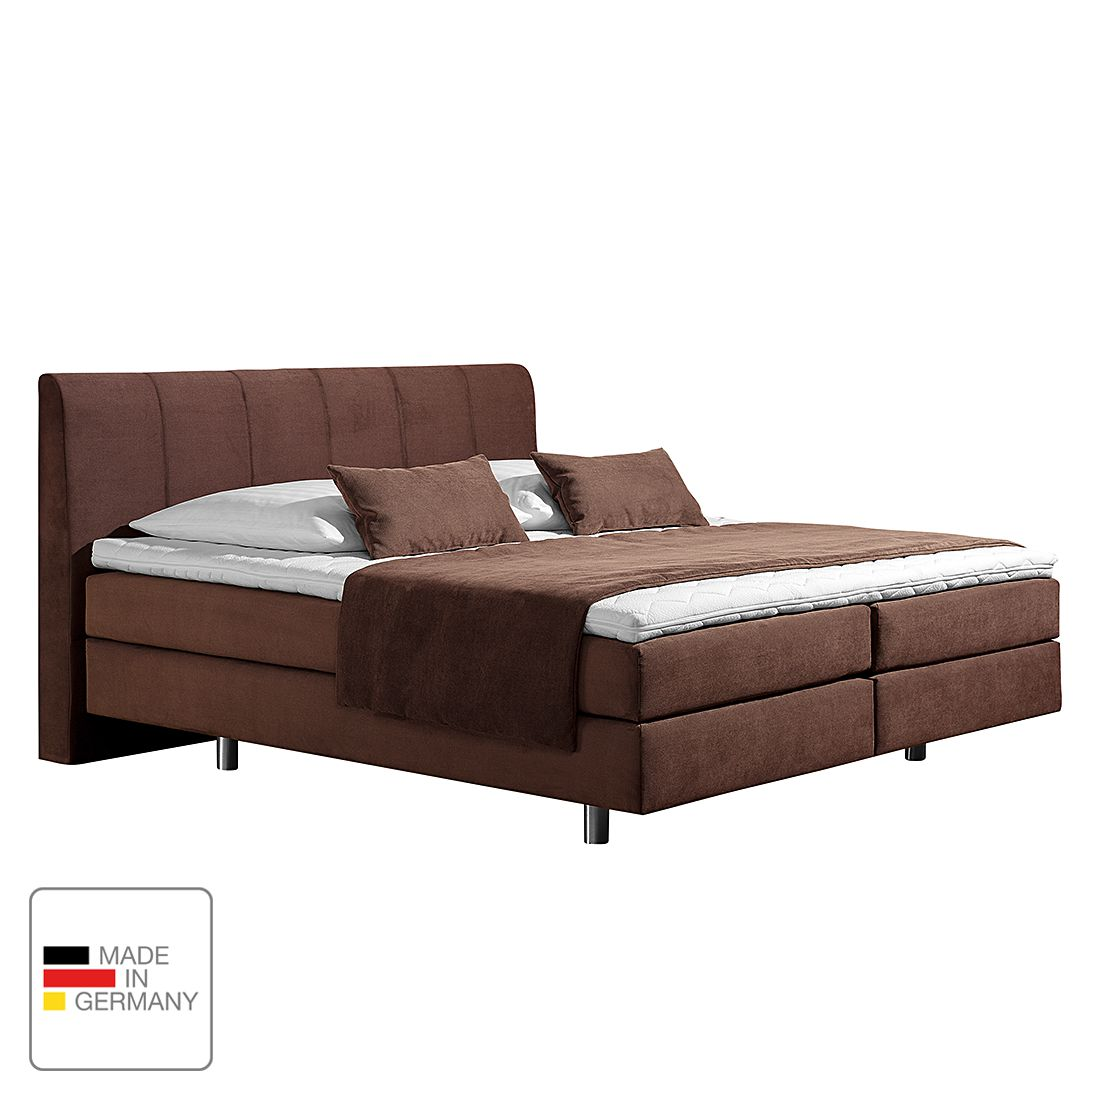 boxspringbett baila webstoff 160 x 200cm h2 bis 80 kg bonellfederkernmatratze. Black Bedroom Furniture Sets. Home Design Ideas